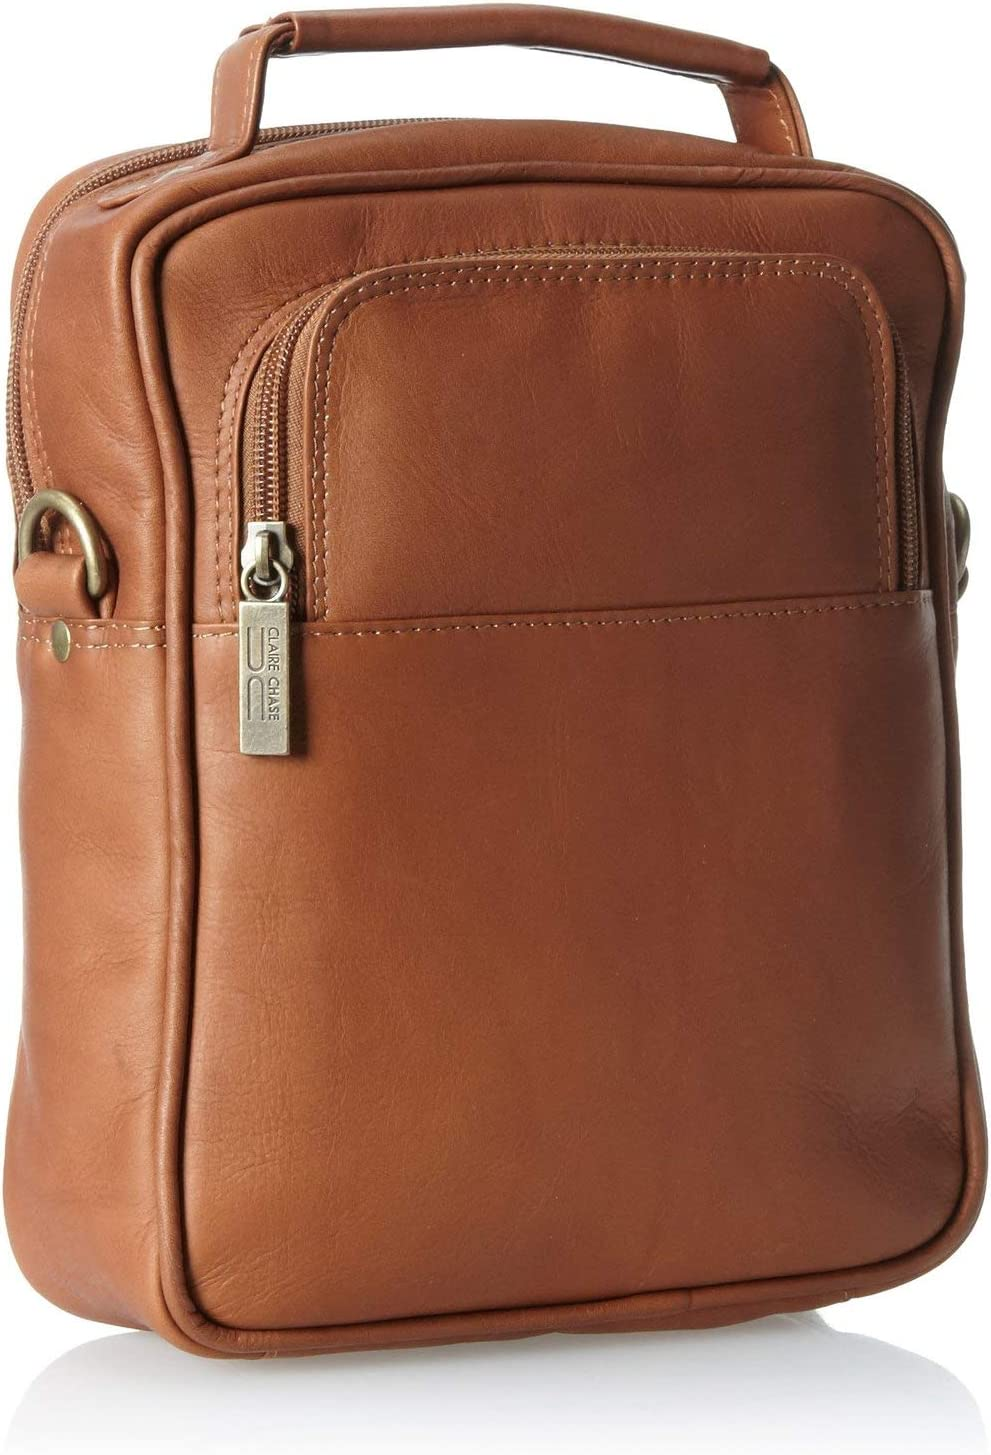 Claire Chase Medium Leather Manbag in Distressed Brown